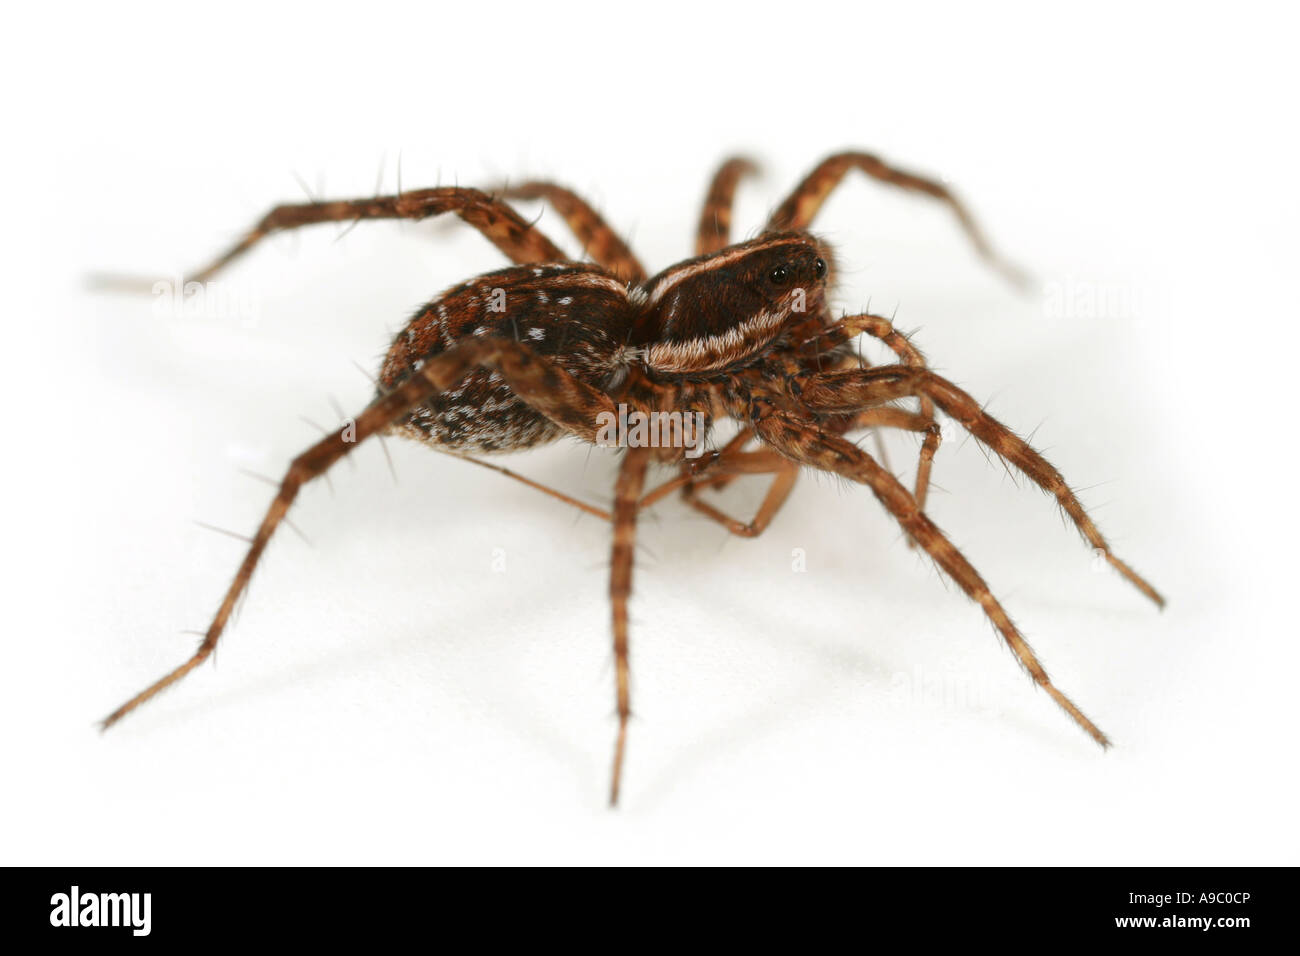 Pardosa palustris, a Wolf spider, family Lycosidae, on white background Still carrying its pray - Stock Image